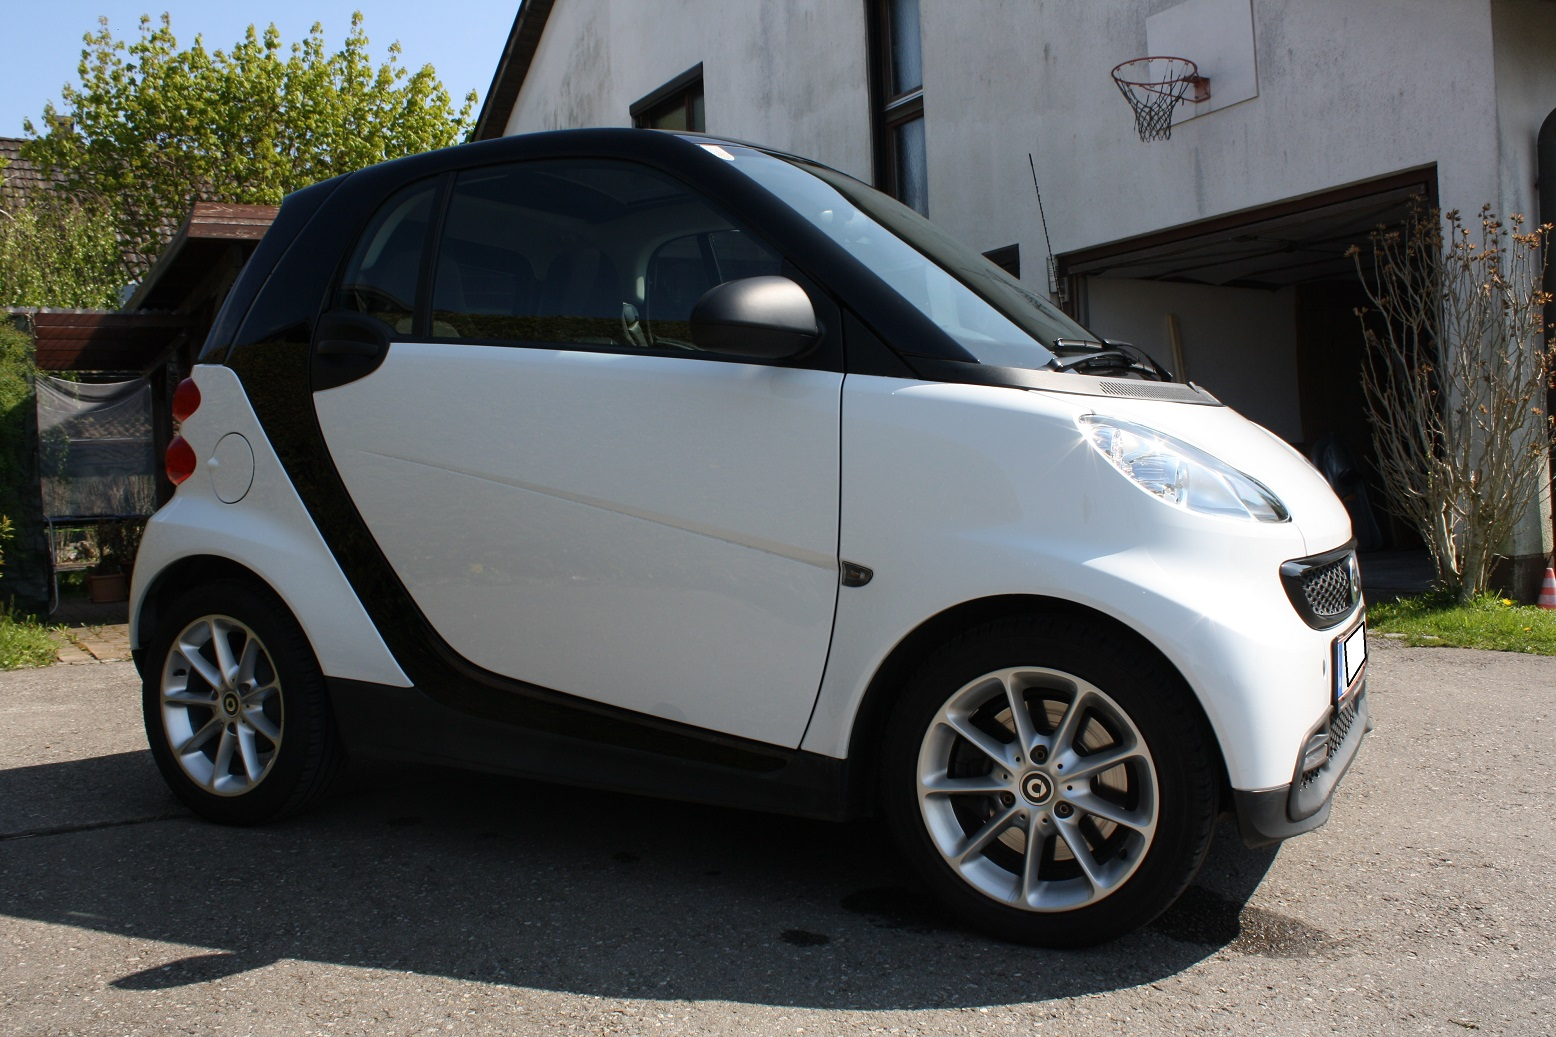 Smart Fortwo - € 5700